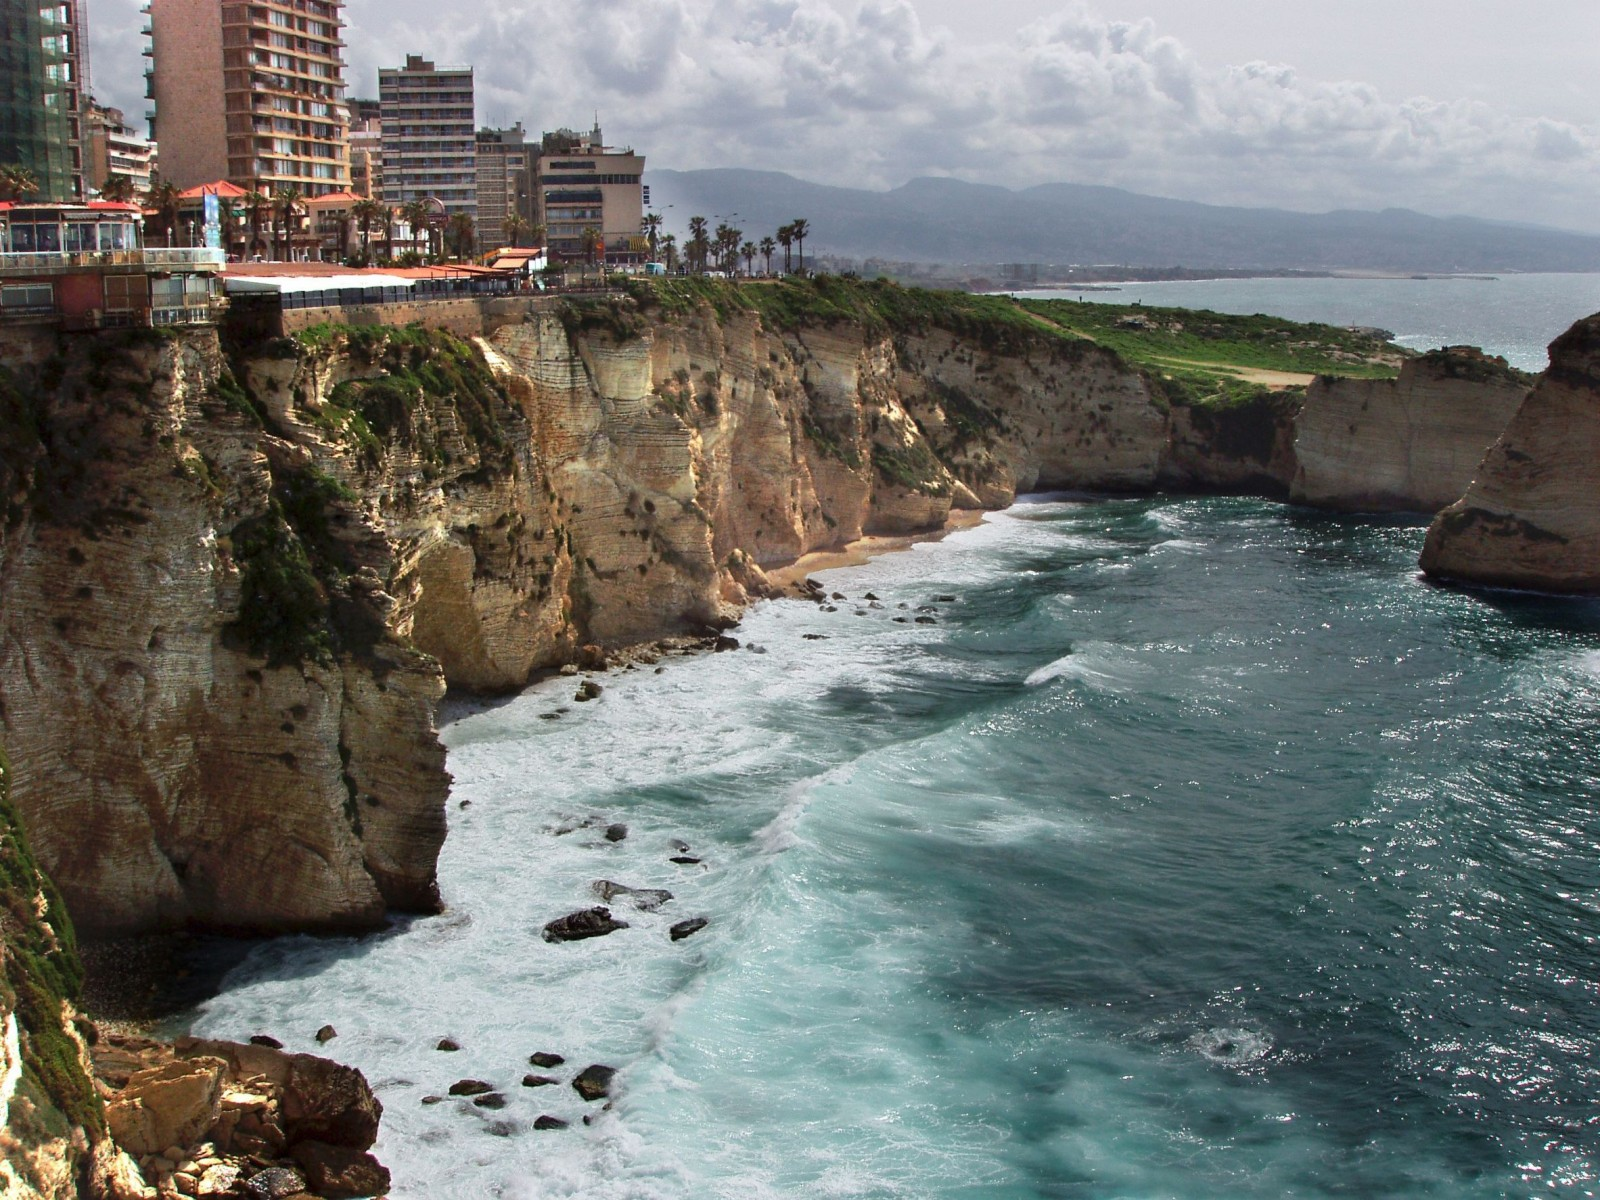 view-of-the-shoreline-of-beirut-lebanon